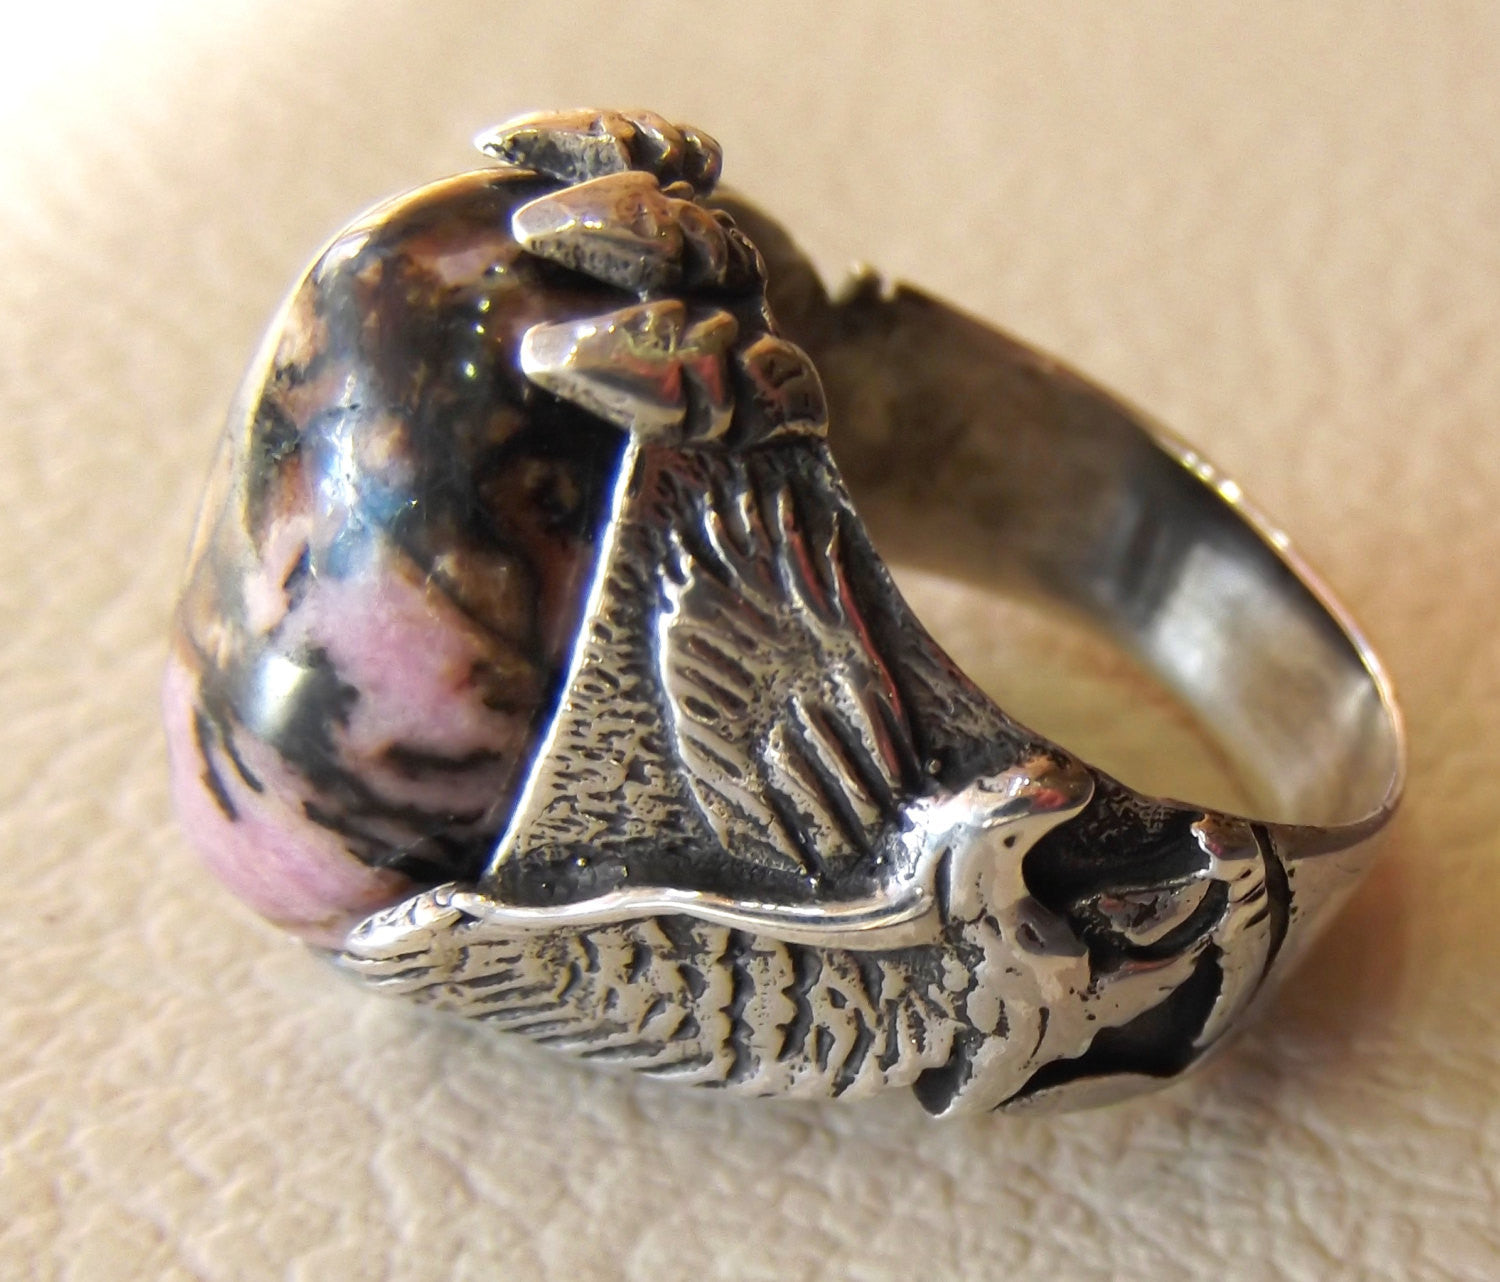 eagle men ring rhodonite jasper oval sterling silver 925 natural stone semi precious pink and black gem all sizes fast shipping jewelry